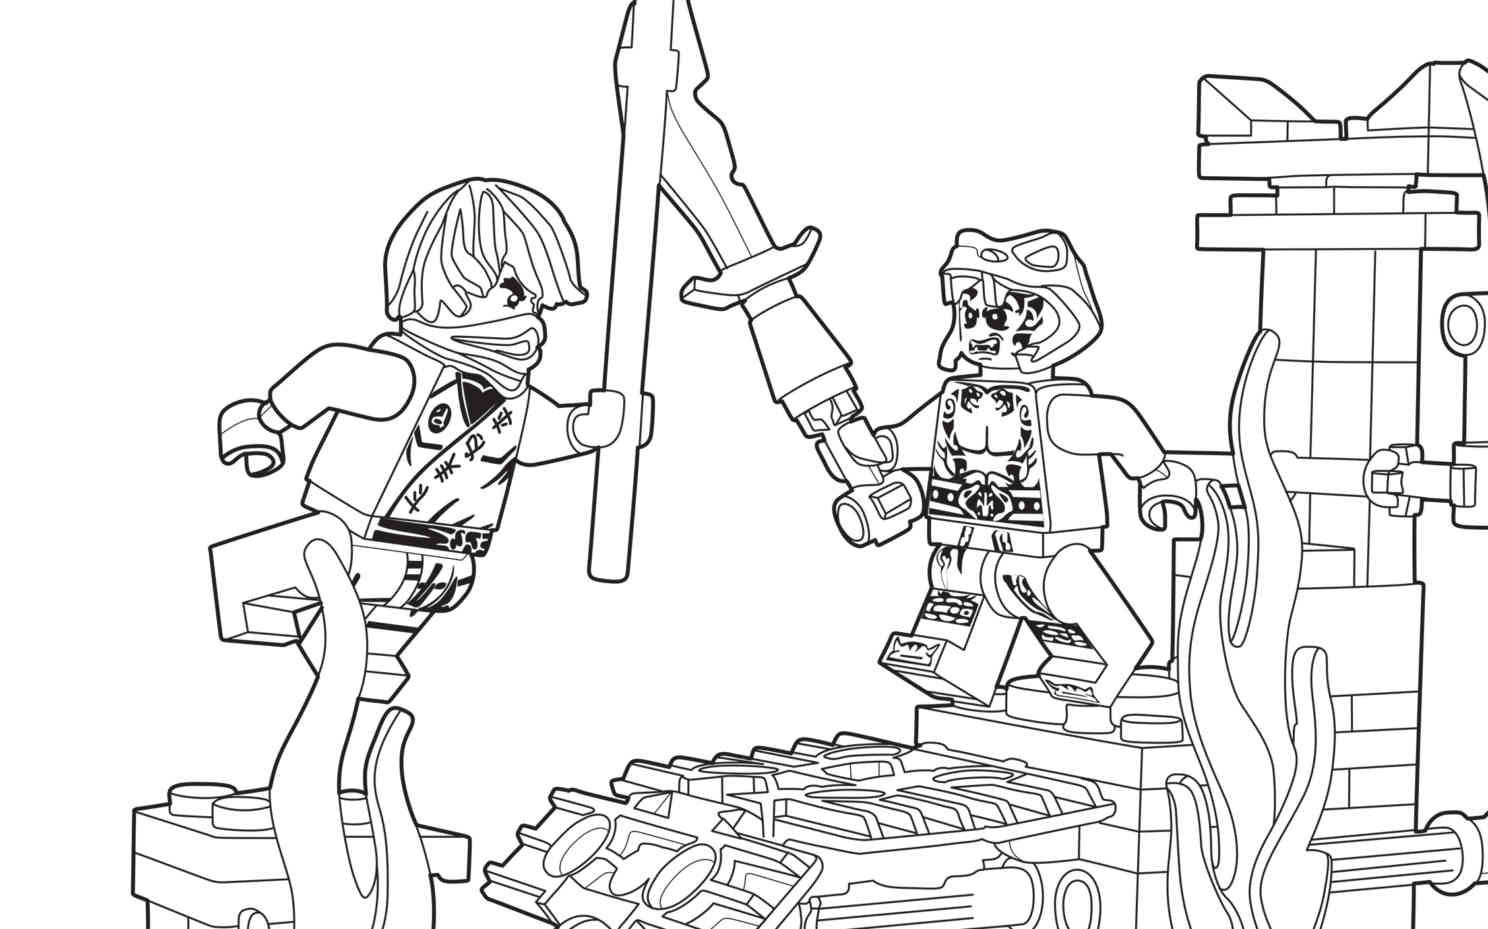 Ninjago coloring pages to color online - Lego Ninjago 70753 Coloring Sheet